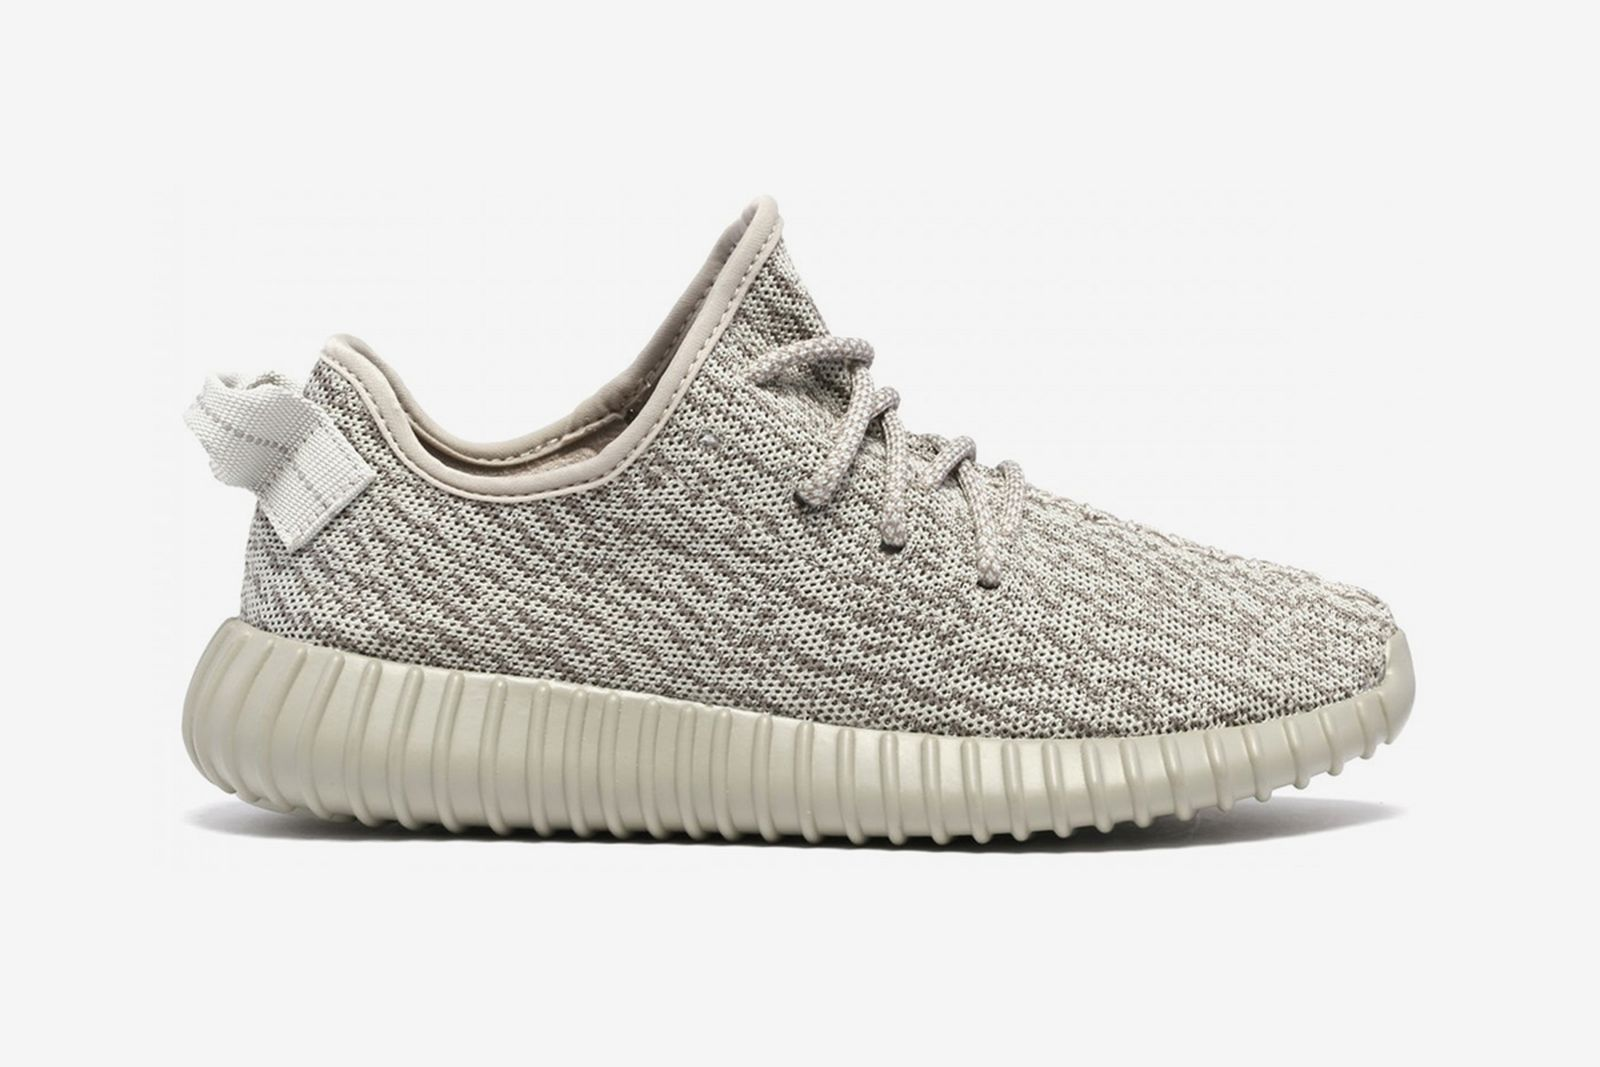 adidas yeezy guide 12 Adidas Yeezy Boost 350 Low Moonrock Grailed StockX adidas Originals